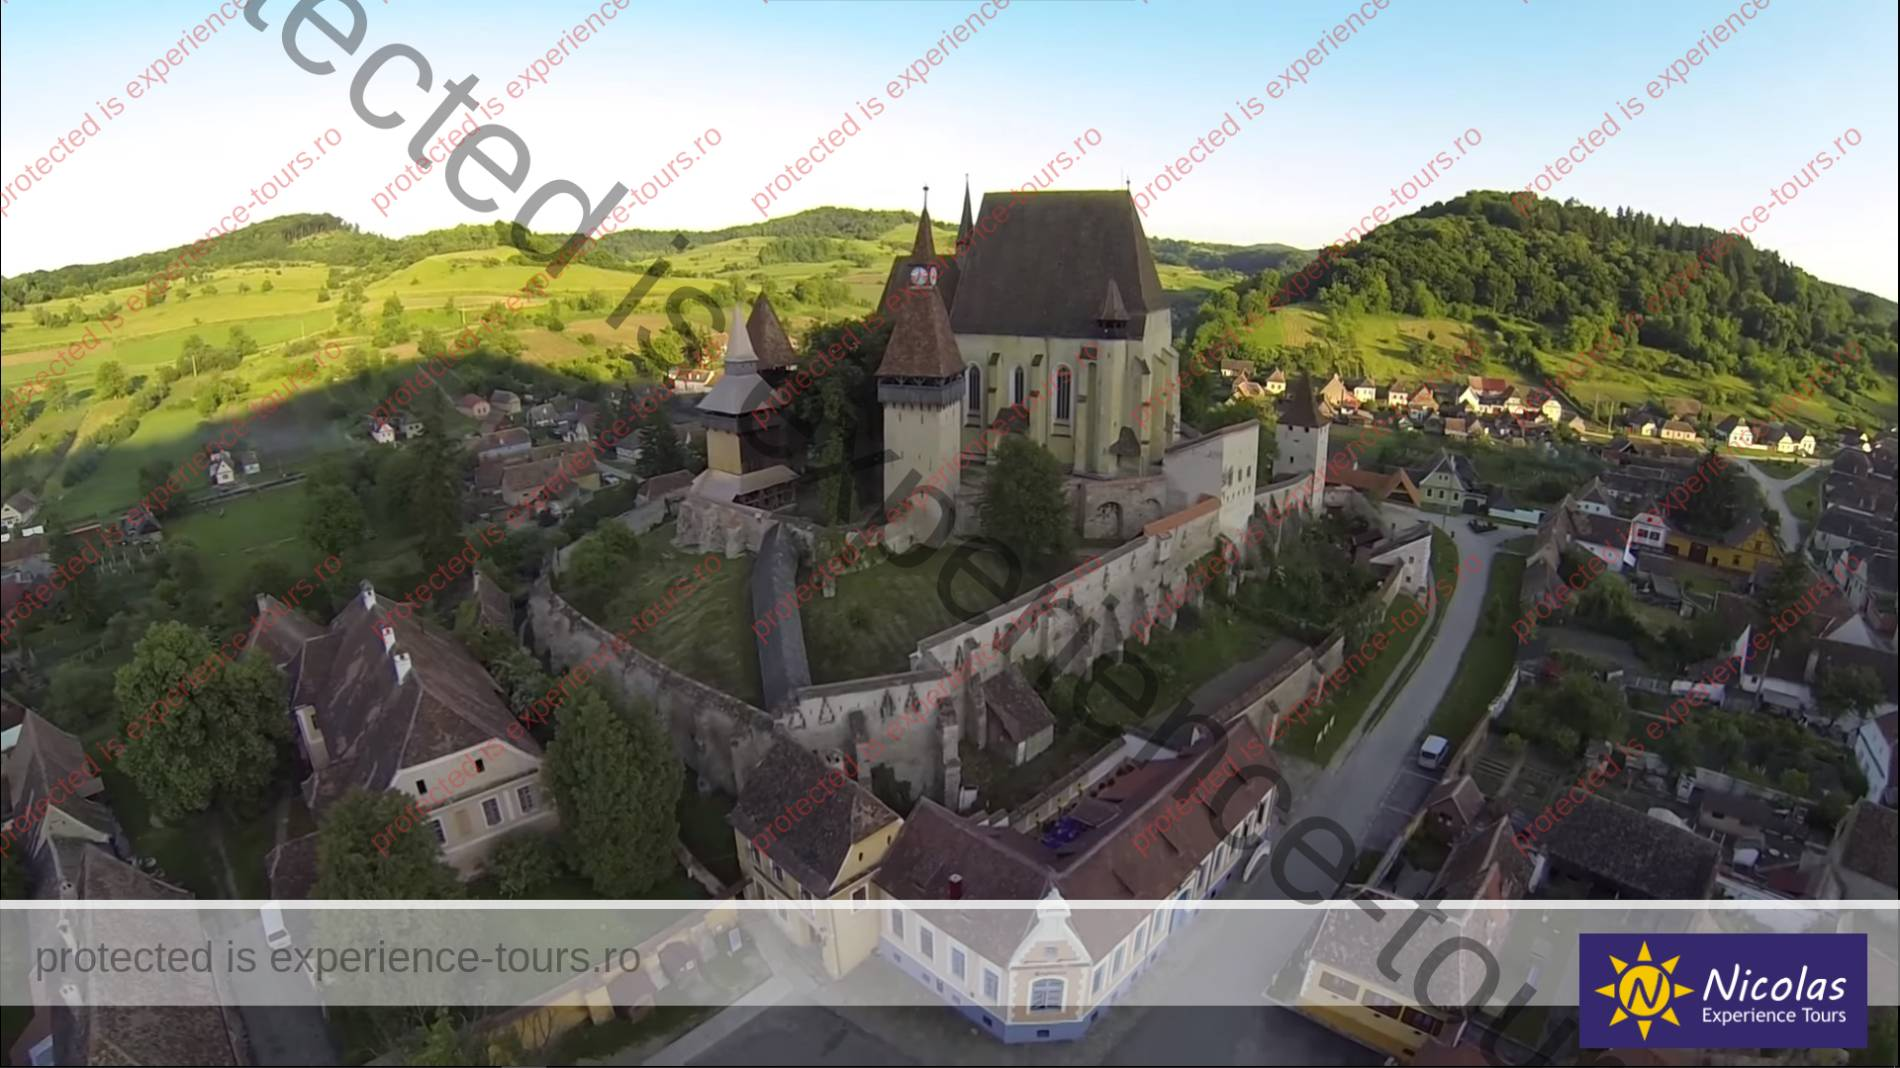 Fortified Church Biertan medieval tours in Romania